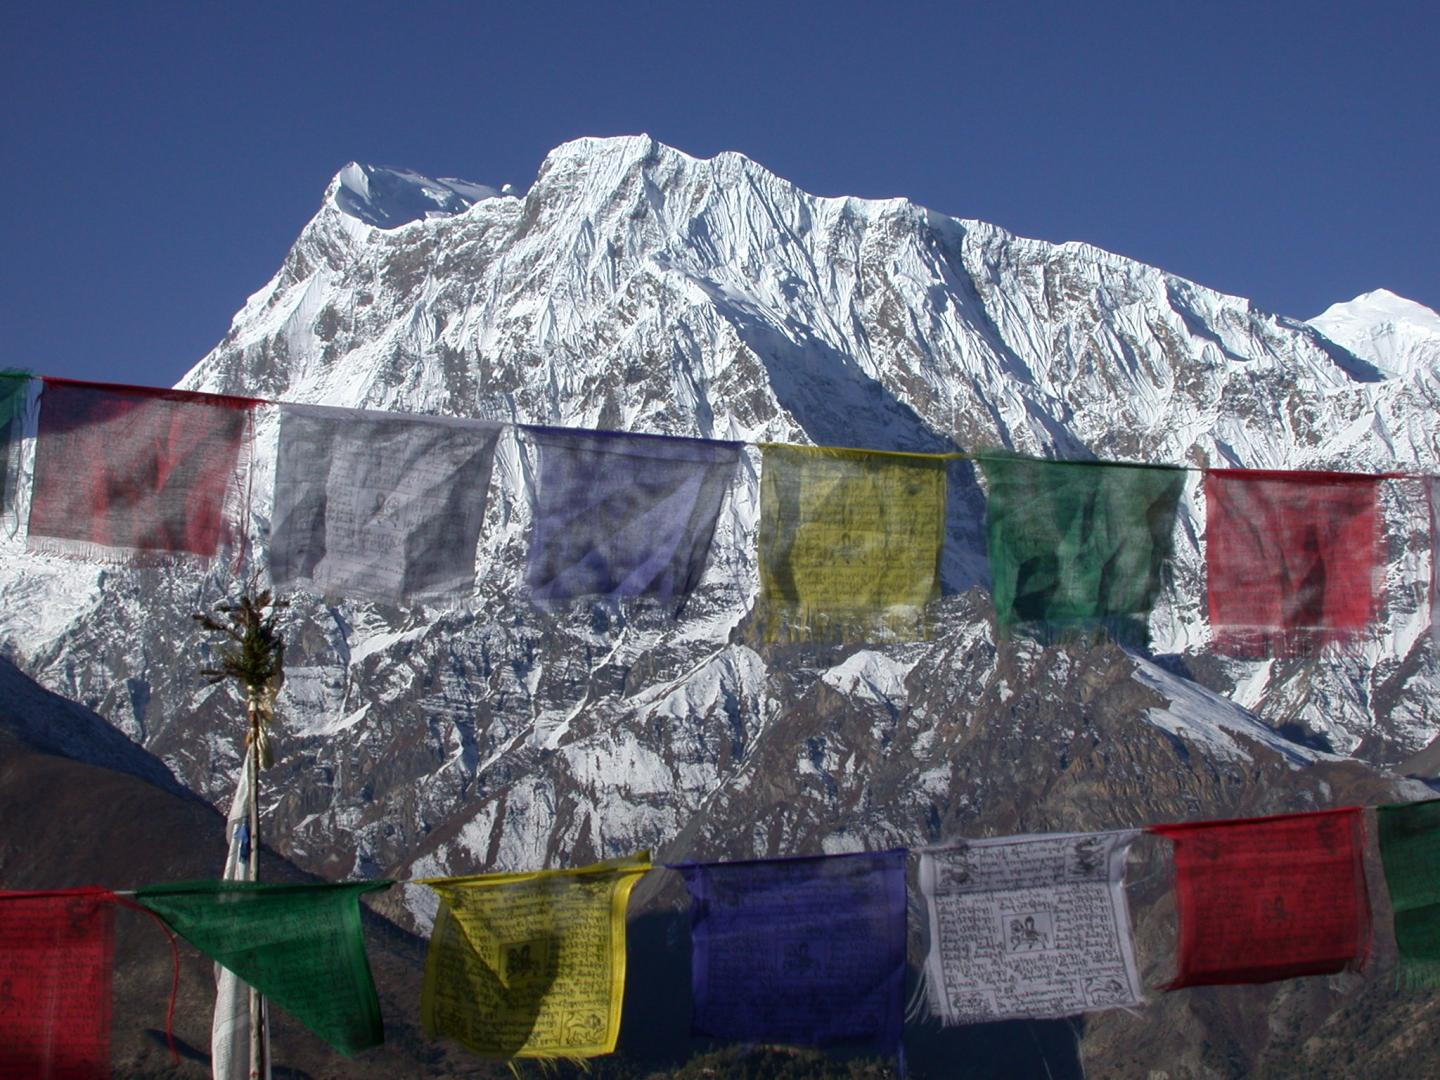 North face of the central Himalaya, where the rainshadow meets the snowline